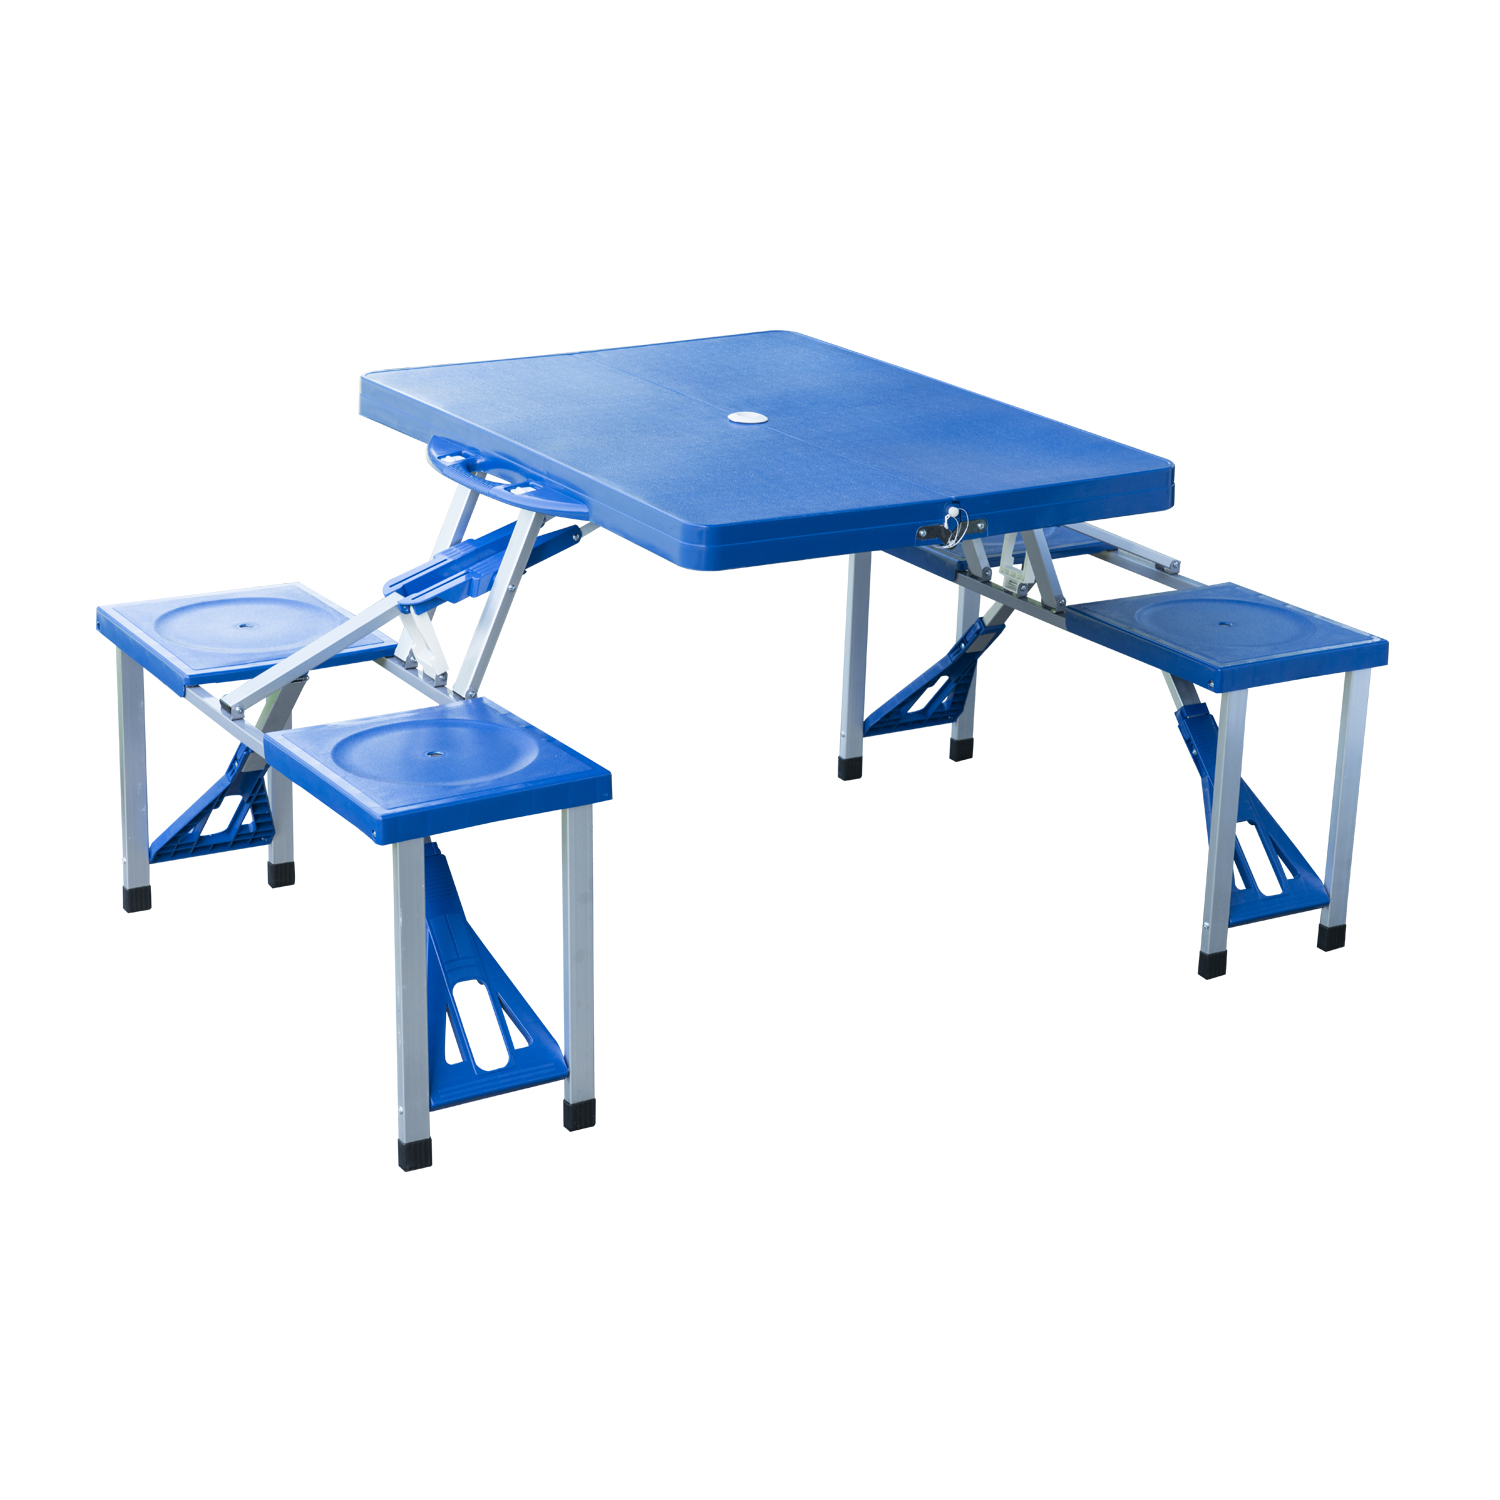 Outsunny Outdoor Portable Suitcase Folding Picnic Table W/ 4 Seats   Blue